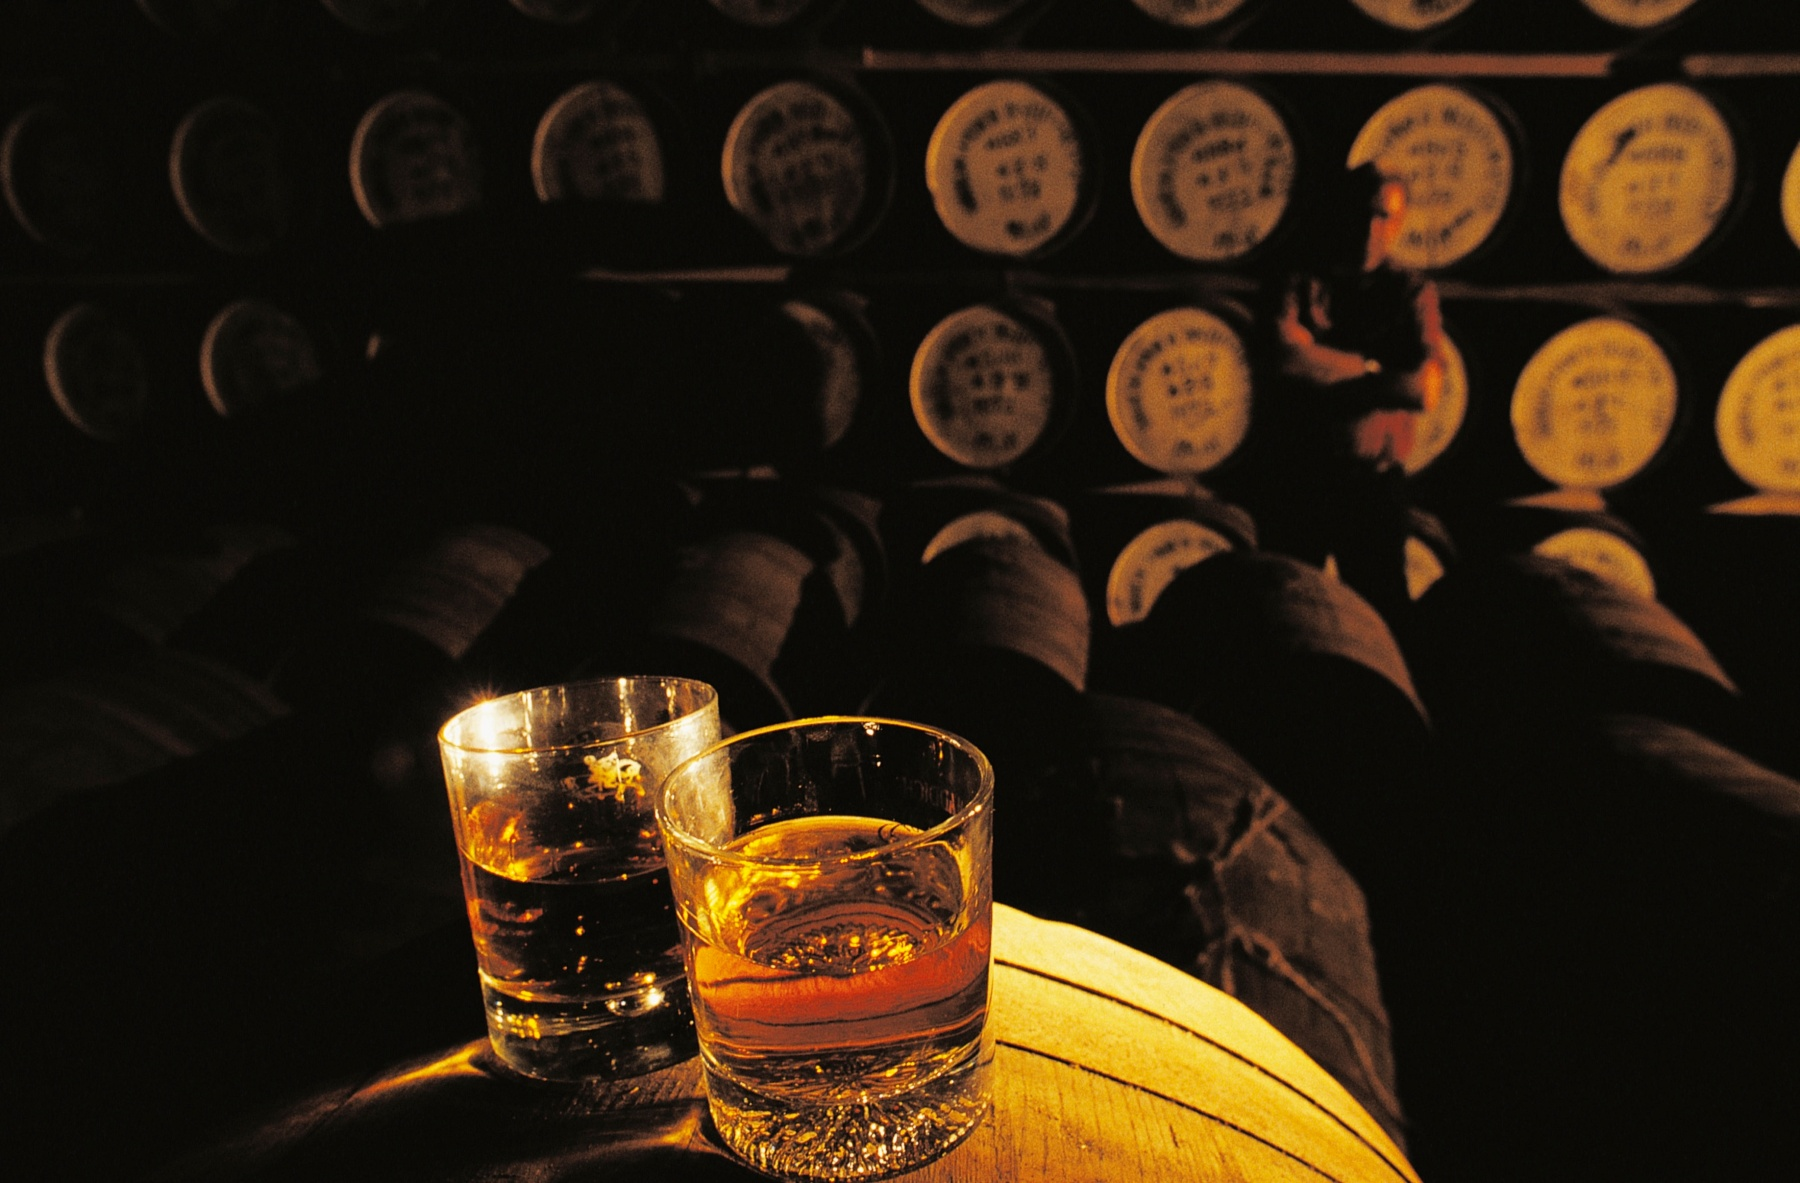 Whiskey glasses on a barrel in a whiskey distillery, Hebrides, United Kingdom.